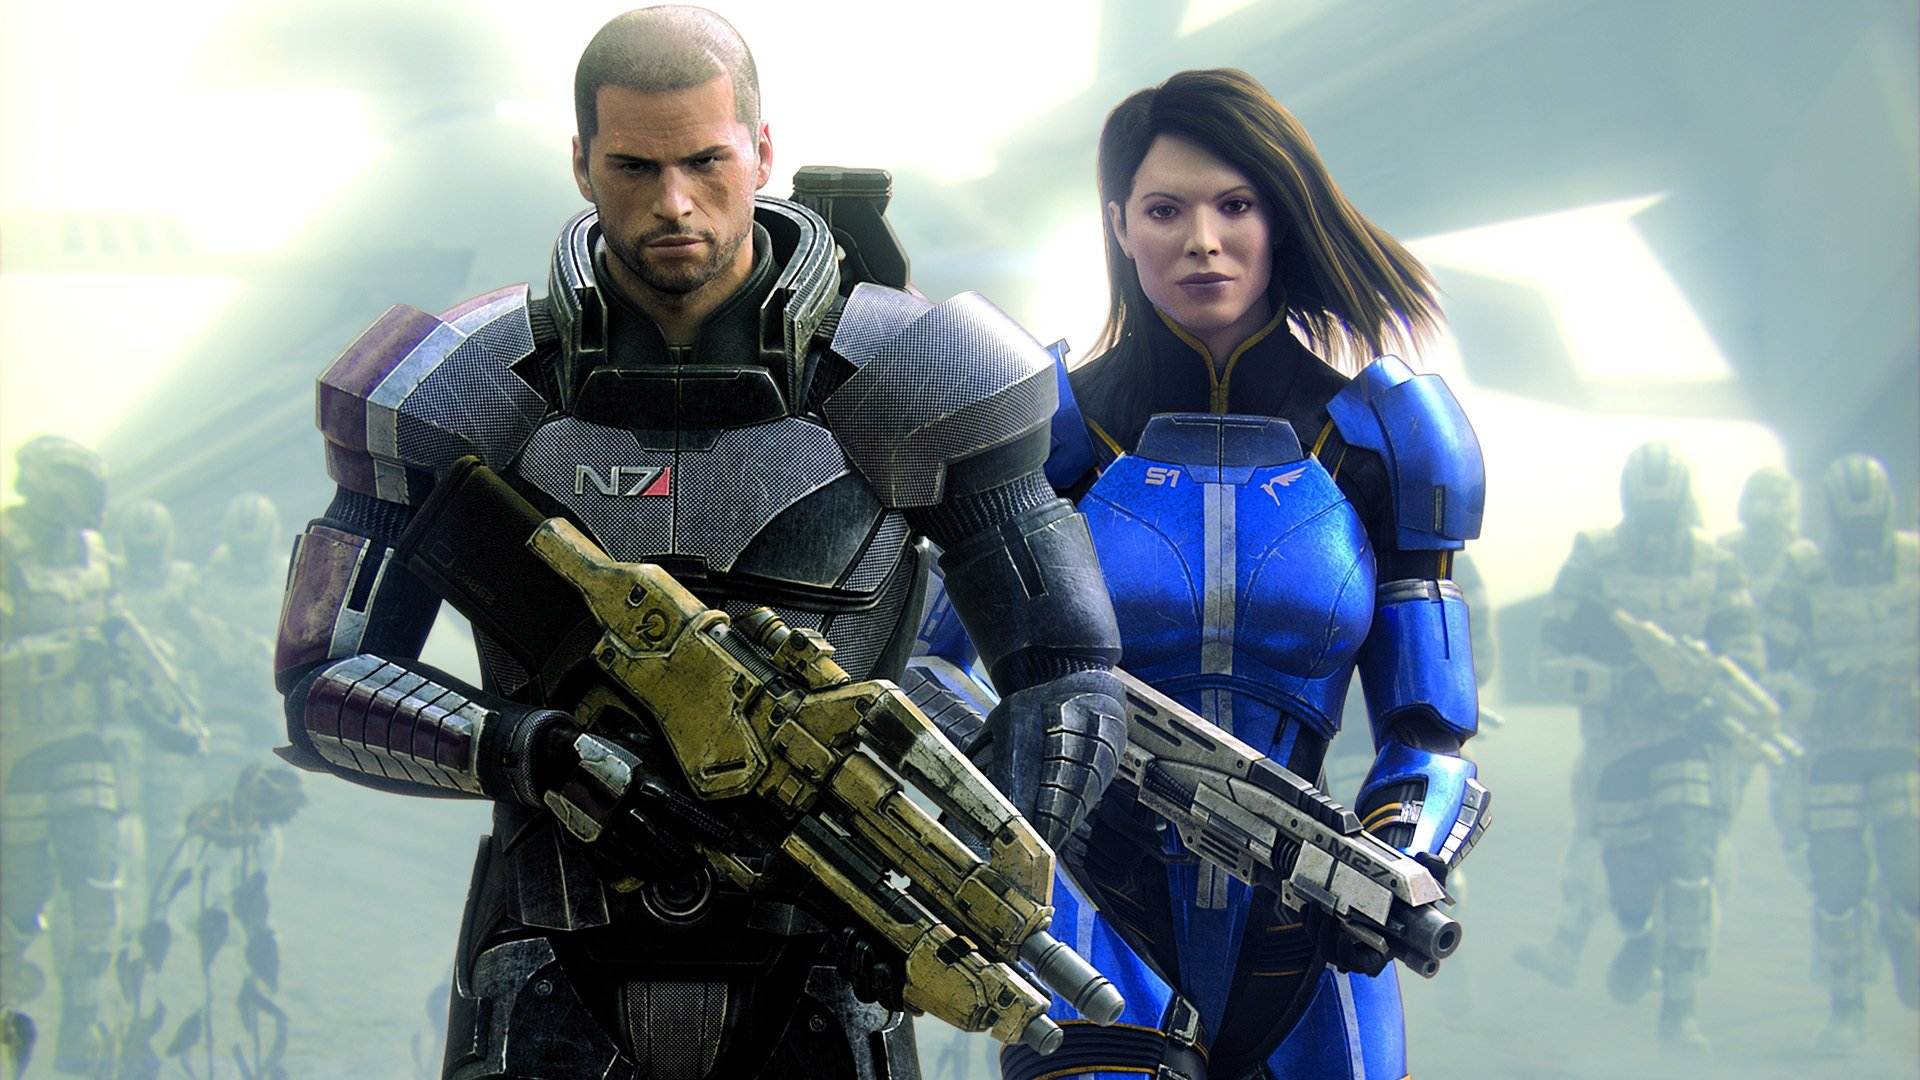 341 Mass Effect 3 Hd Wallpapers Background Images Wallpaper Abyss